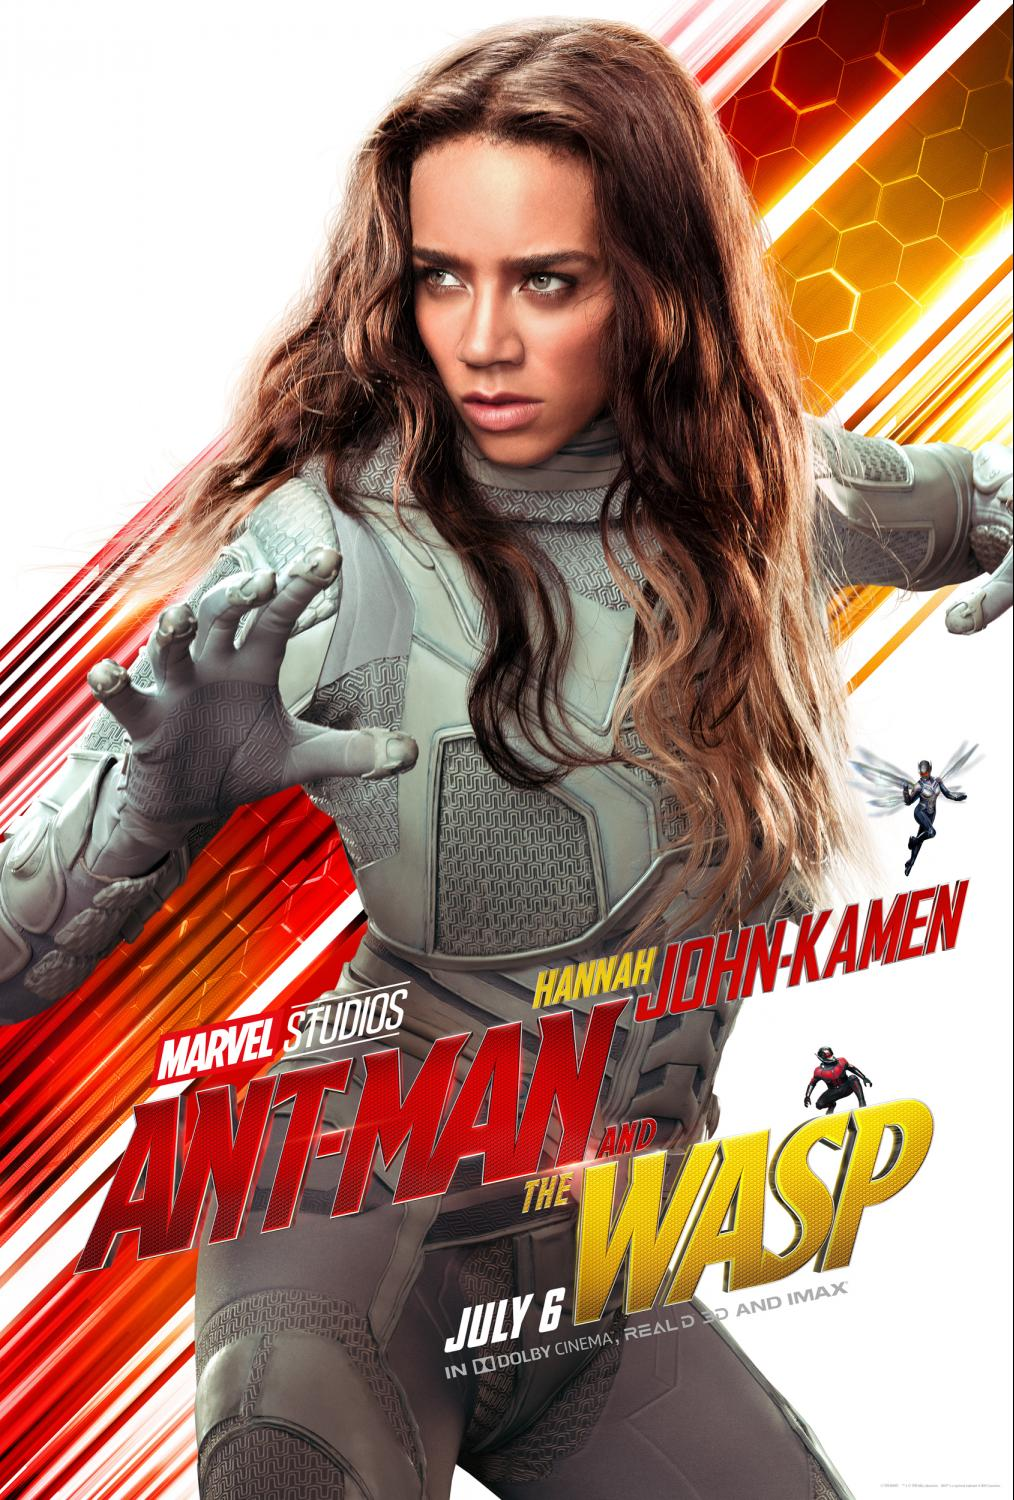 Talking with Hannah John-Kamen about Ant-Man and the Wasp - We talked joining the Marvel Universe Family, girl power, and more.